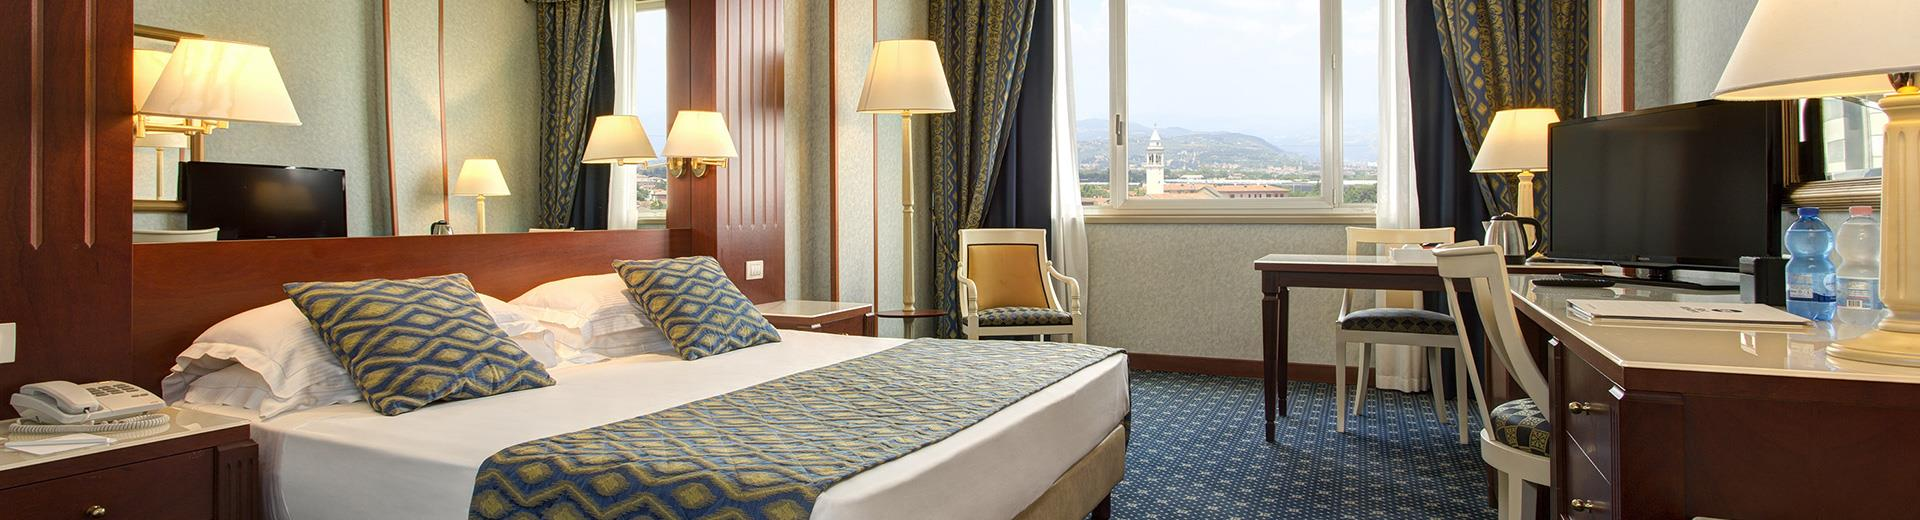 Looking for a hotel for your stay in San Giovanni Lupatoto (VR)? Book/reserve at the Best Western CTC Hotel Verona